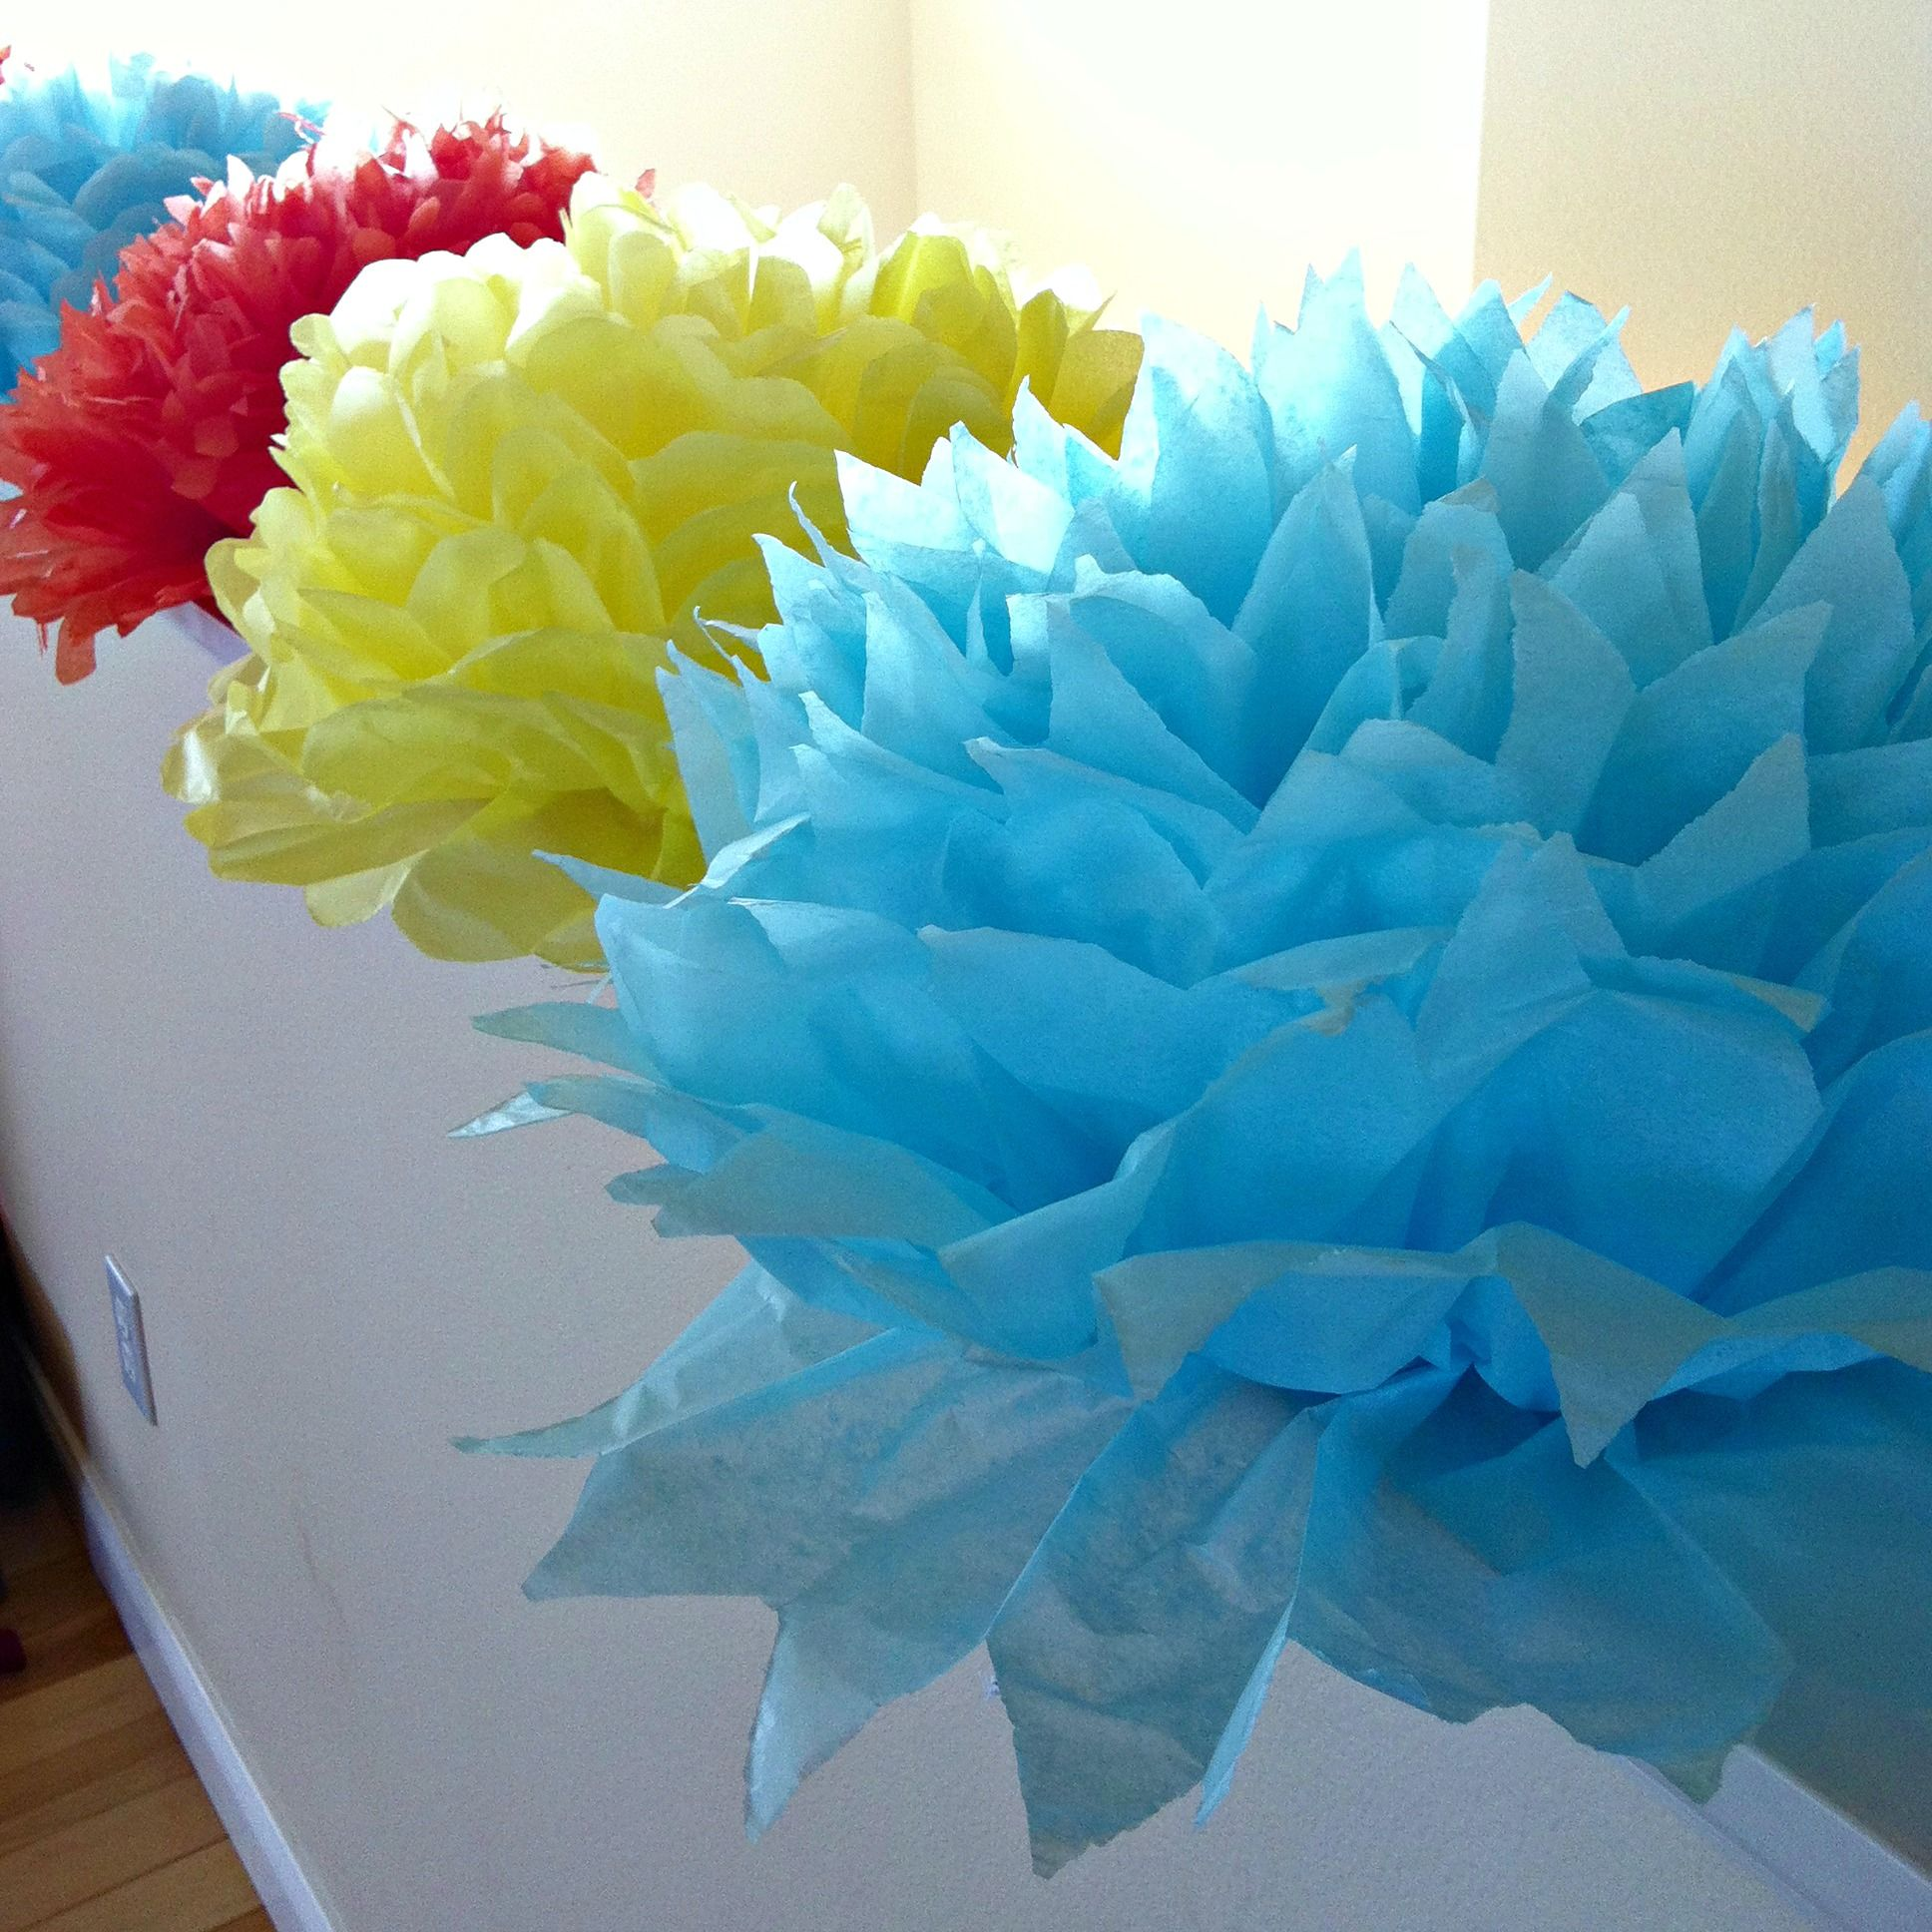 DIY Giant Handmade Tissue Paper Flowers Tutorial 2 For 100 Make Beautiful Birthday Party Decorations Or